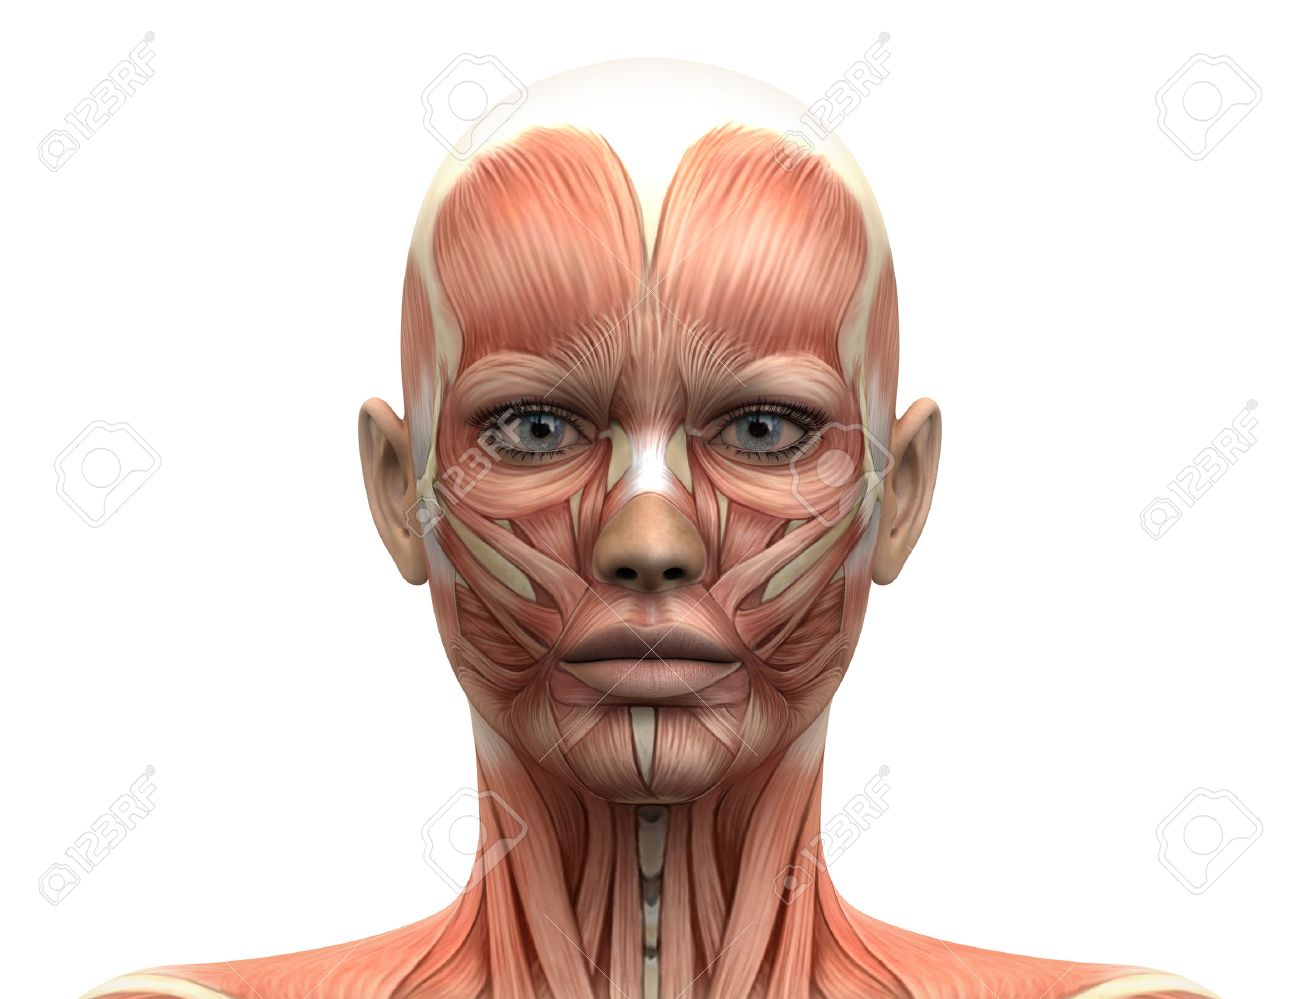 Female Head Muscles Anatomy - Front View Stock Photo, Picture And ...